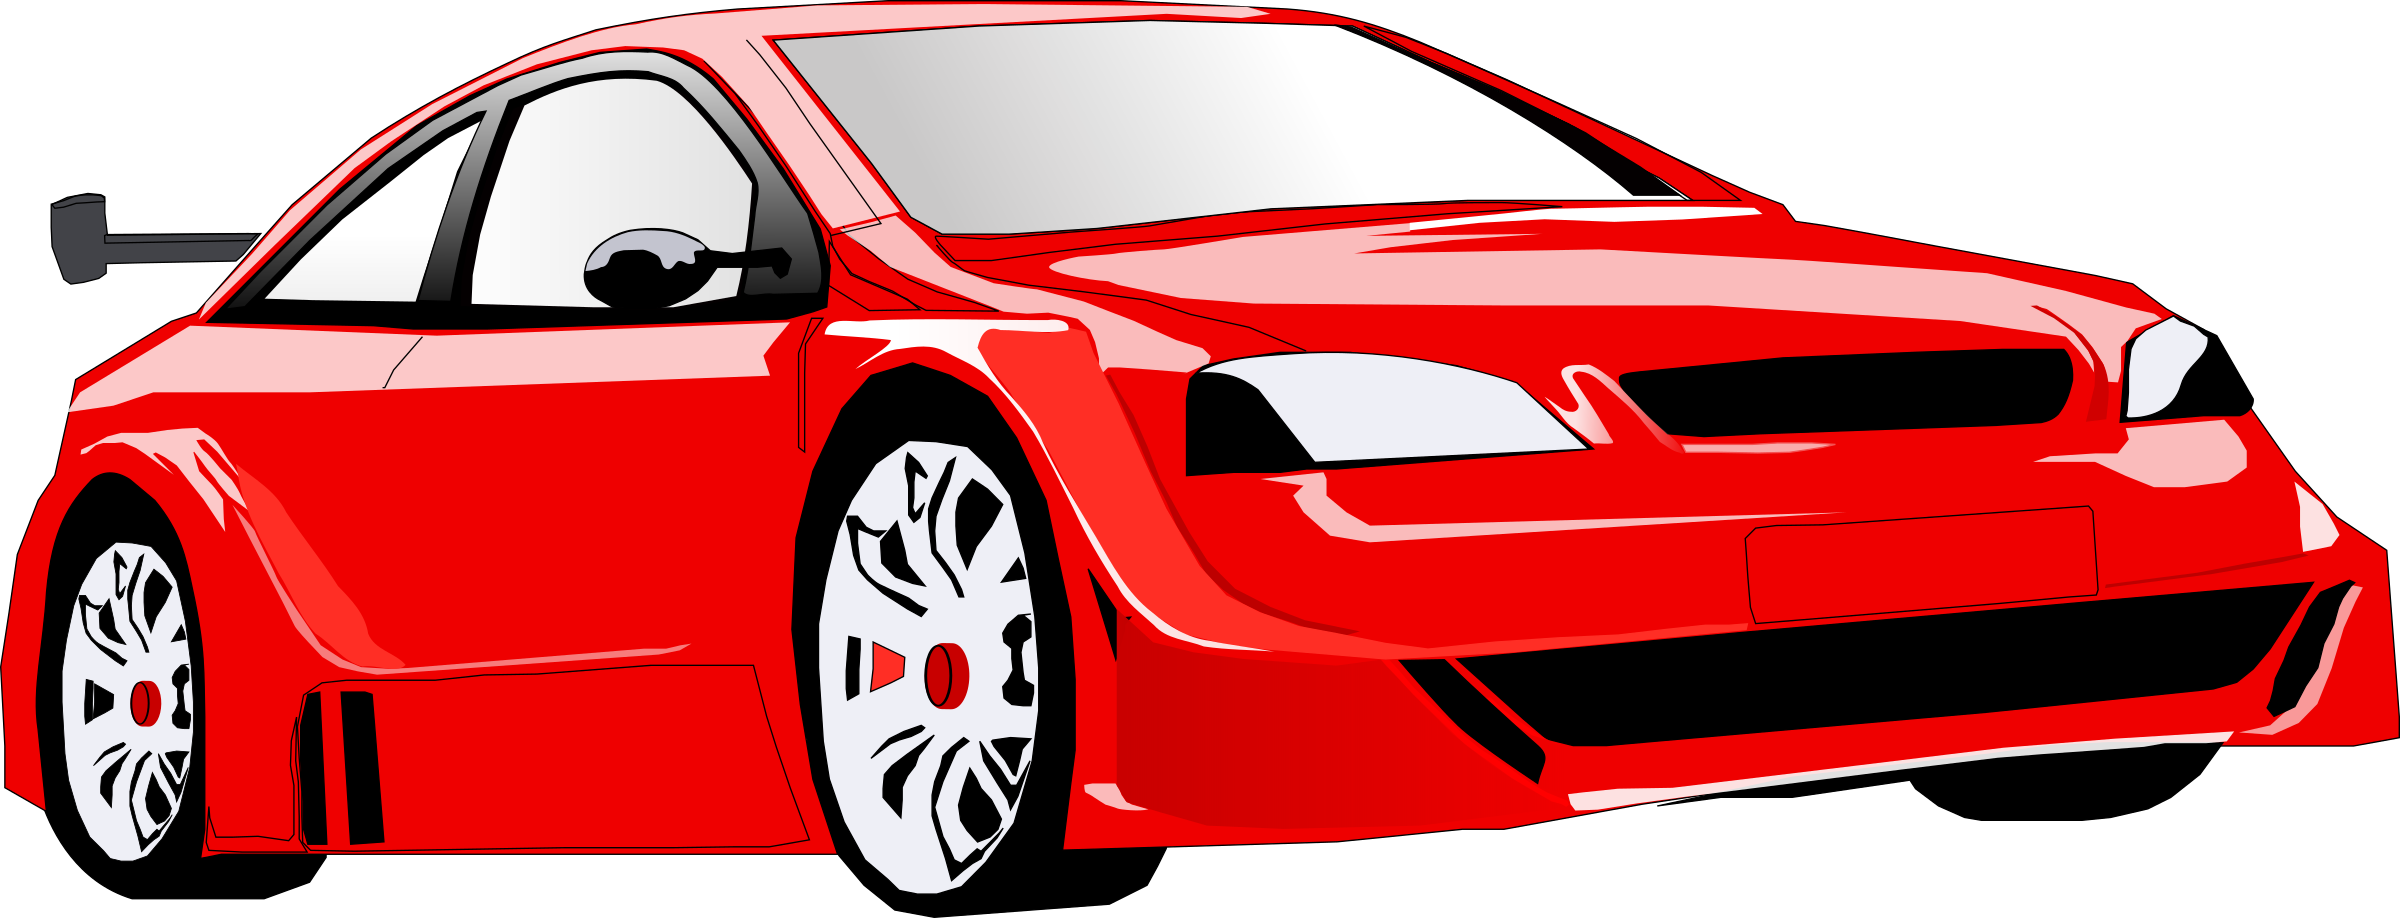 Red sports car car clipart clipart transparent stock Sports Car Clipart - Clipart Kid clipart transparent stock